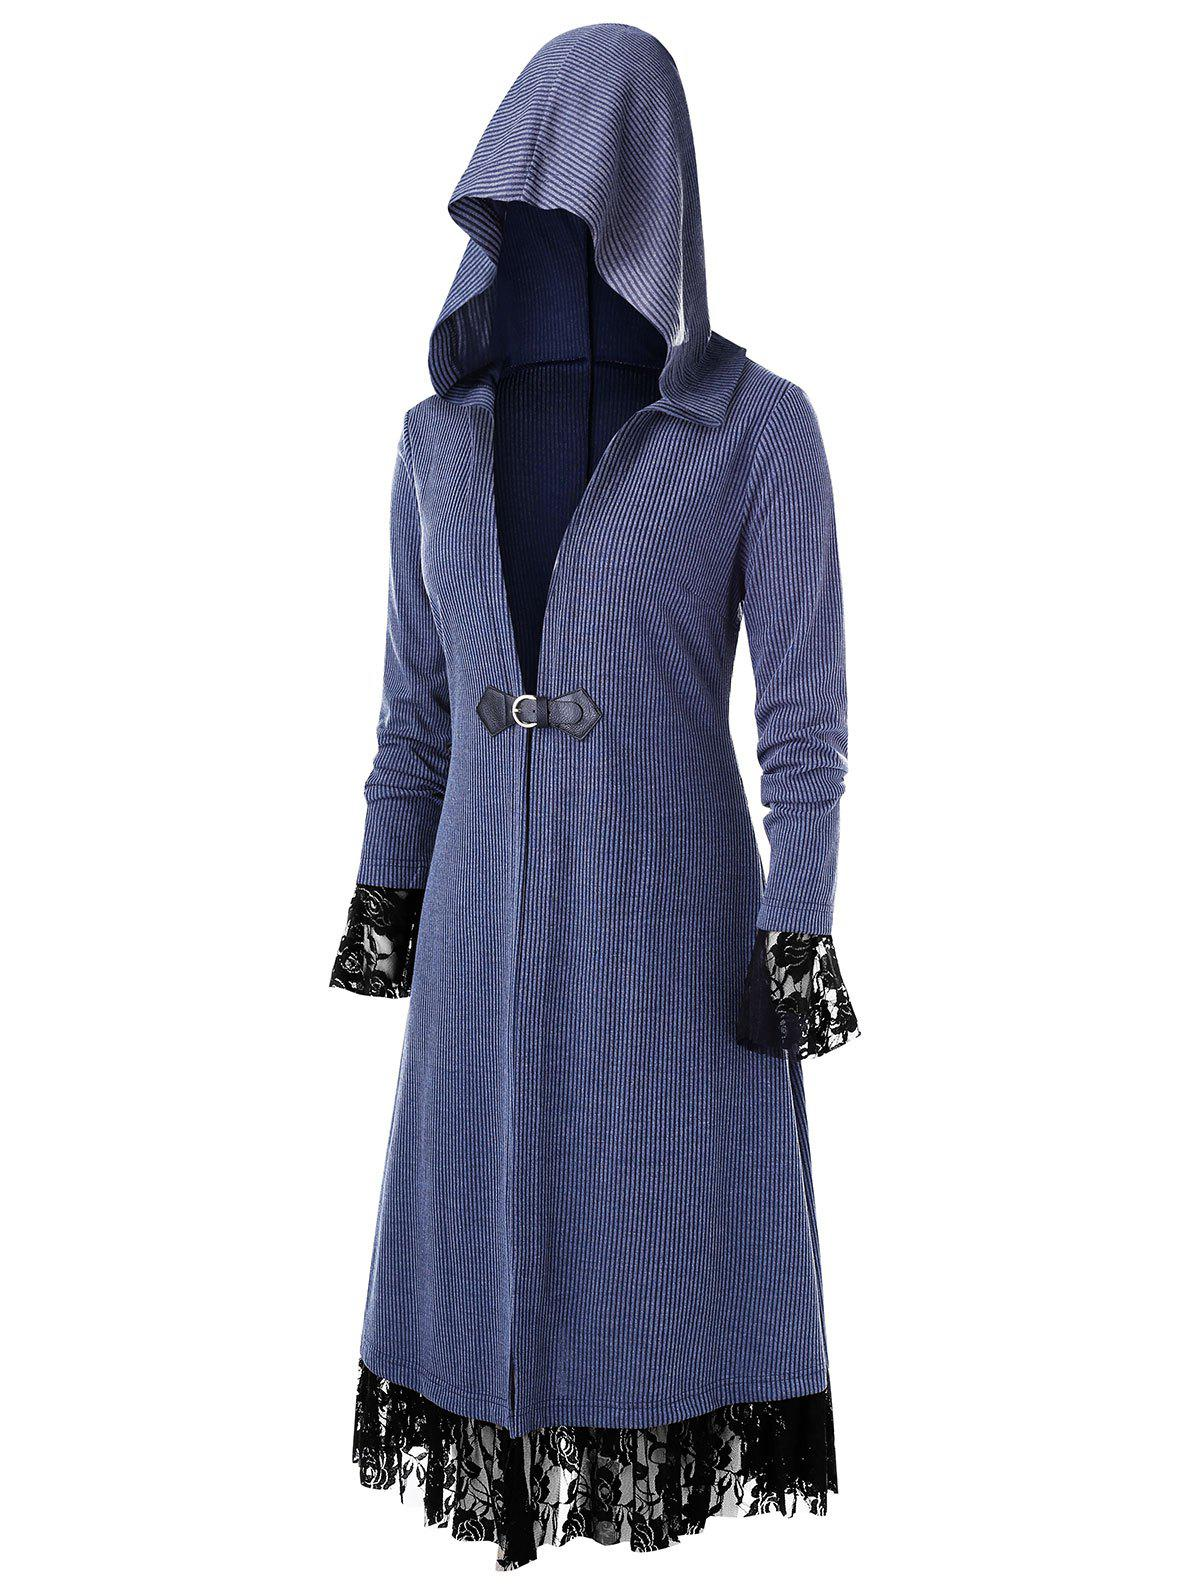 Plus Size Longline Hooded Lace Insert Coat - DARK SLATE BLUE 4X